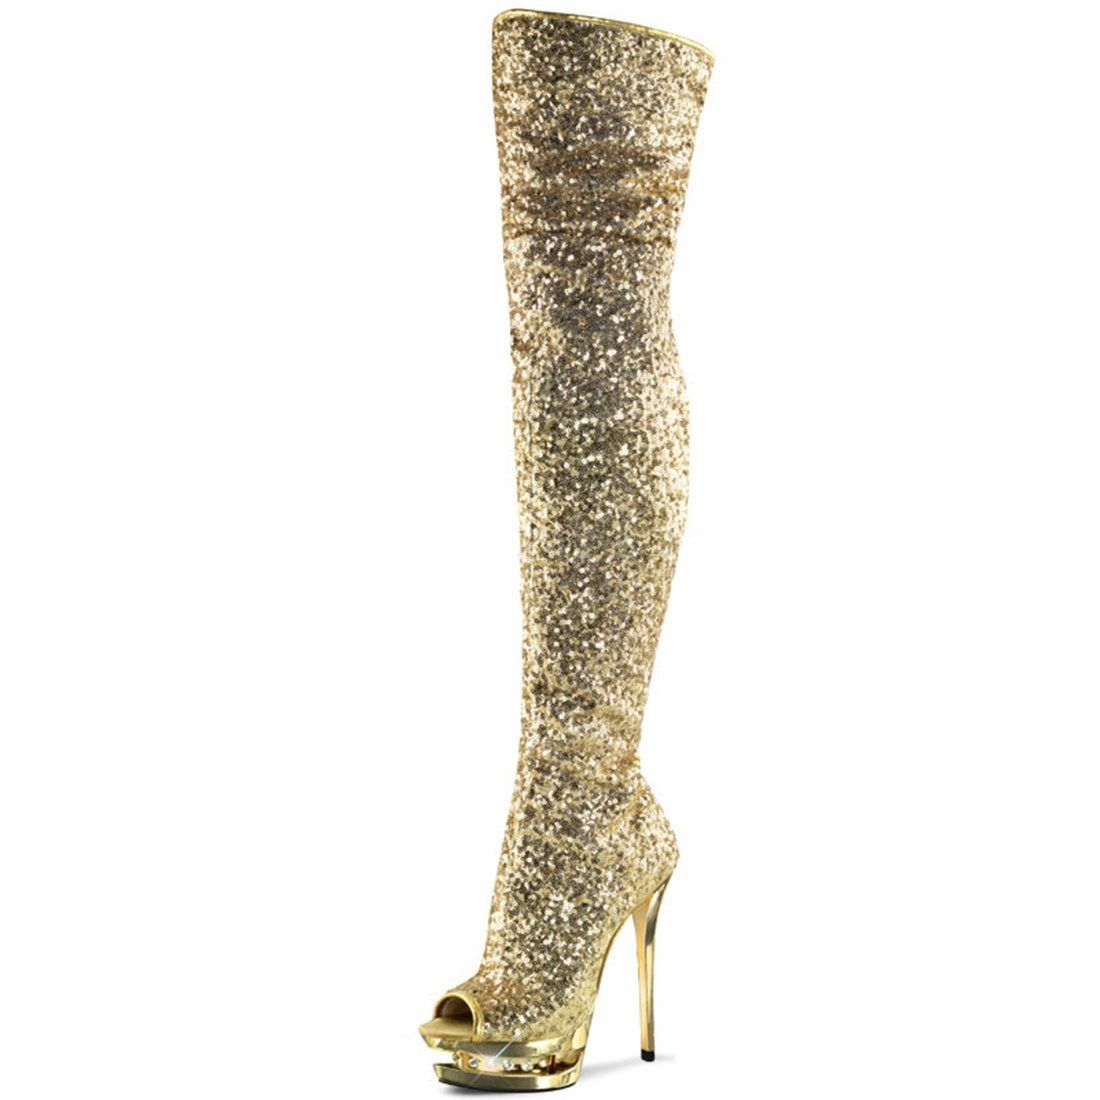 f45123d69 Summitfashions Sparkling Gold Thigh High Platform Boots Double Platforms 6  Inch Heels * Very kind of your presence to drop by to see our image.